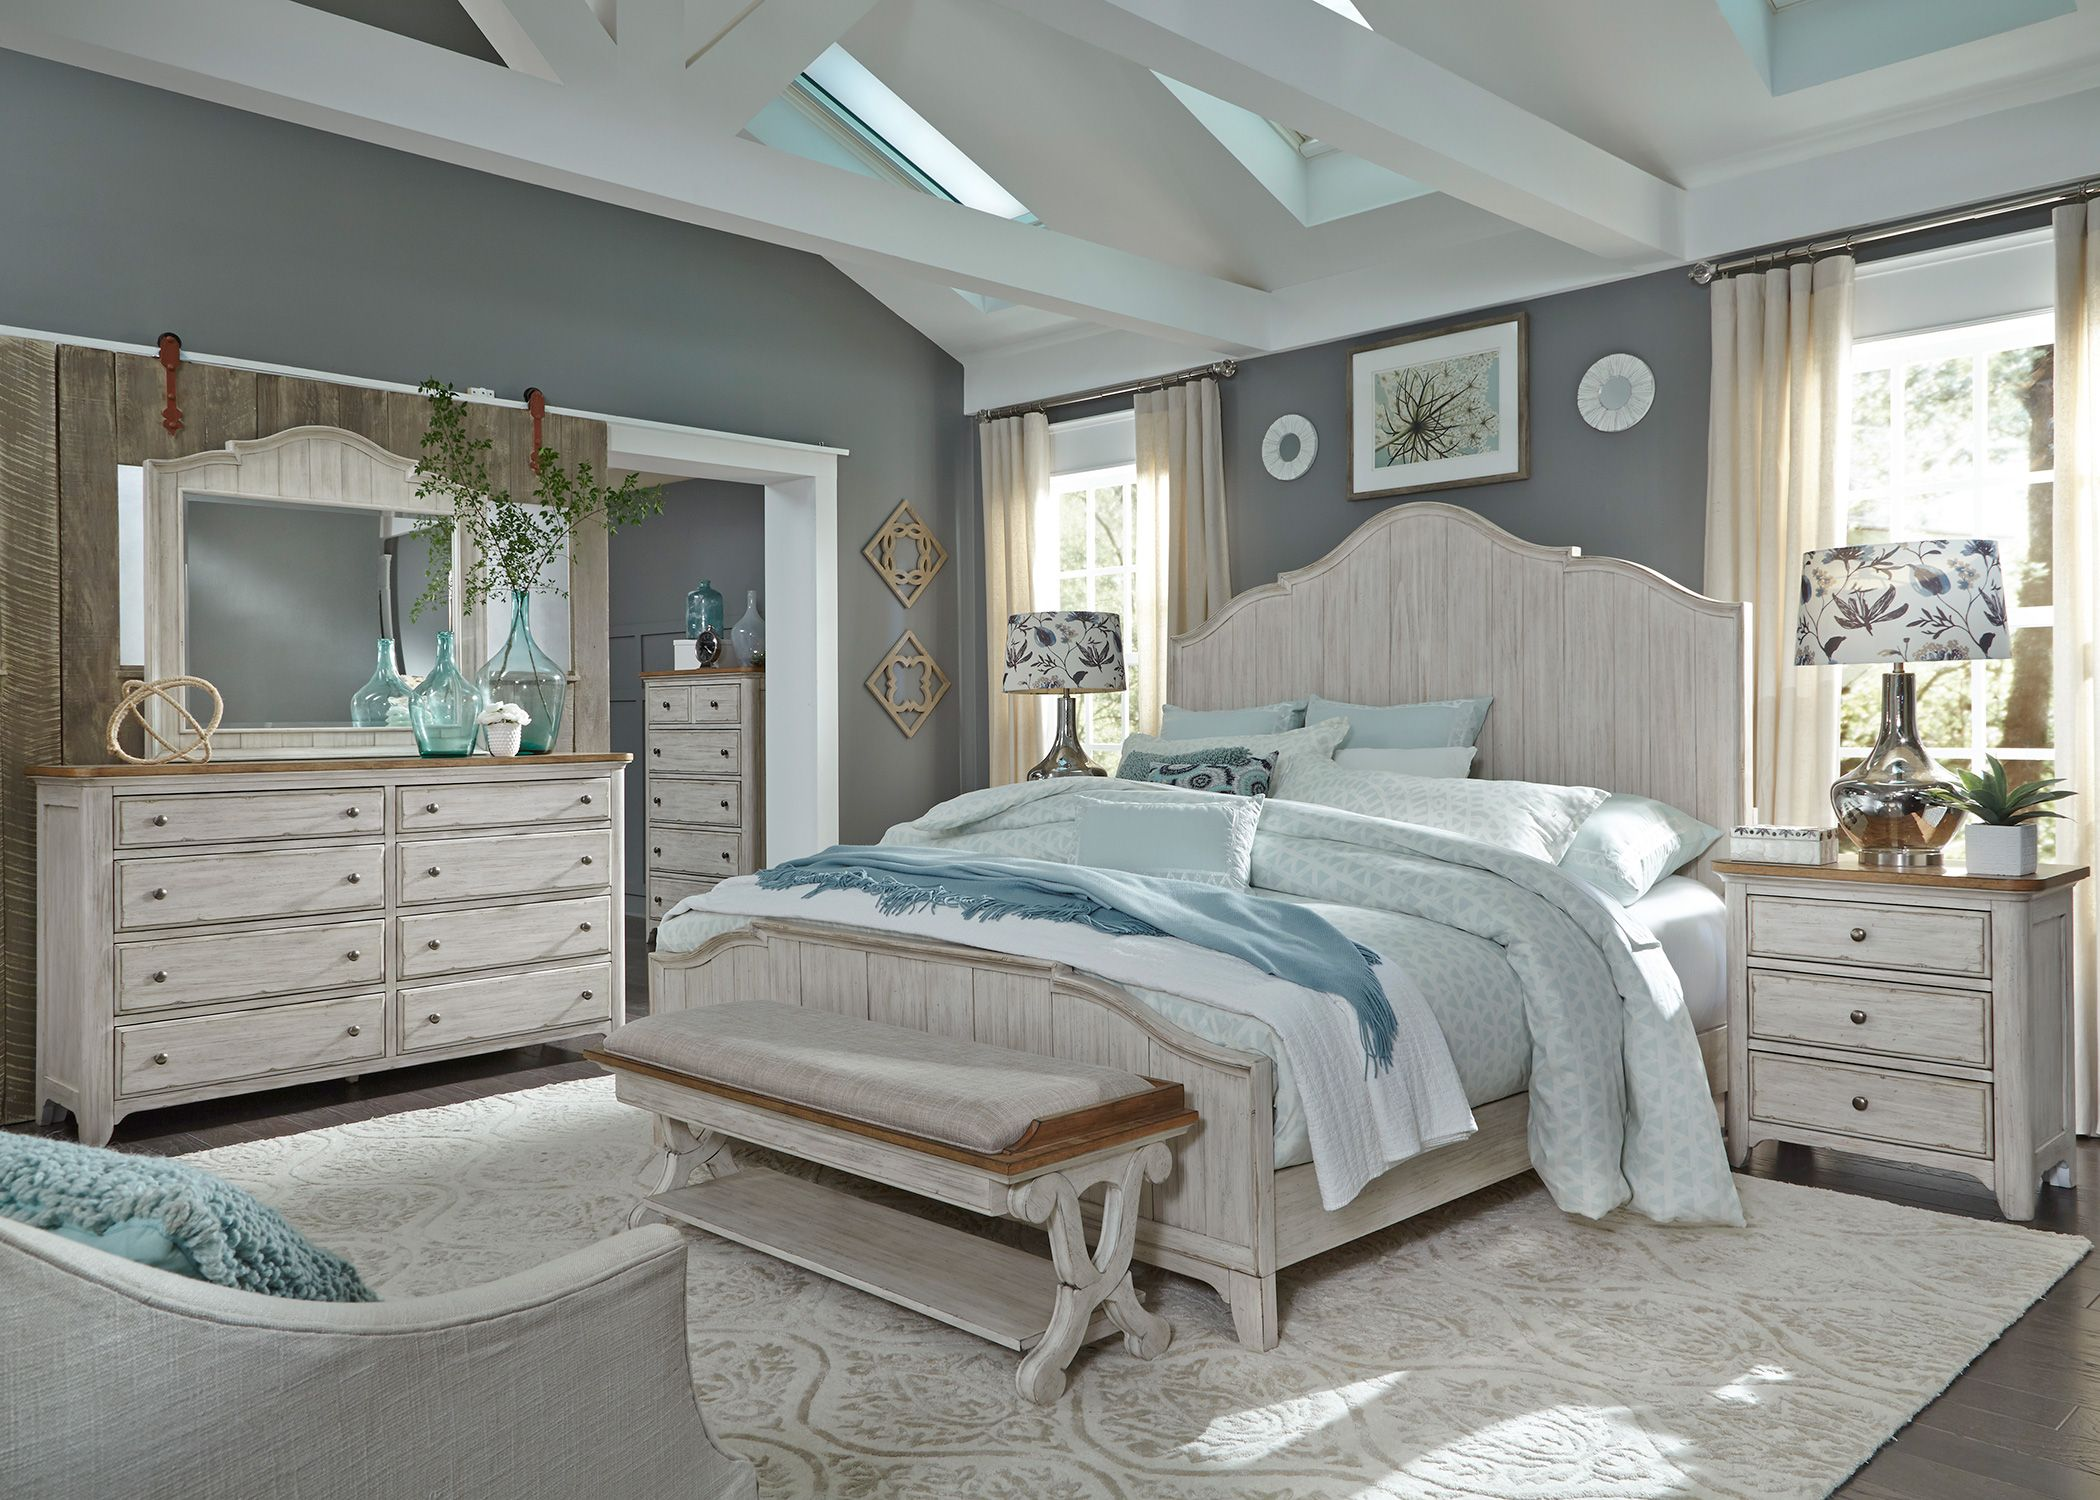 This collection exudes farmhouse chic! The